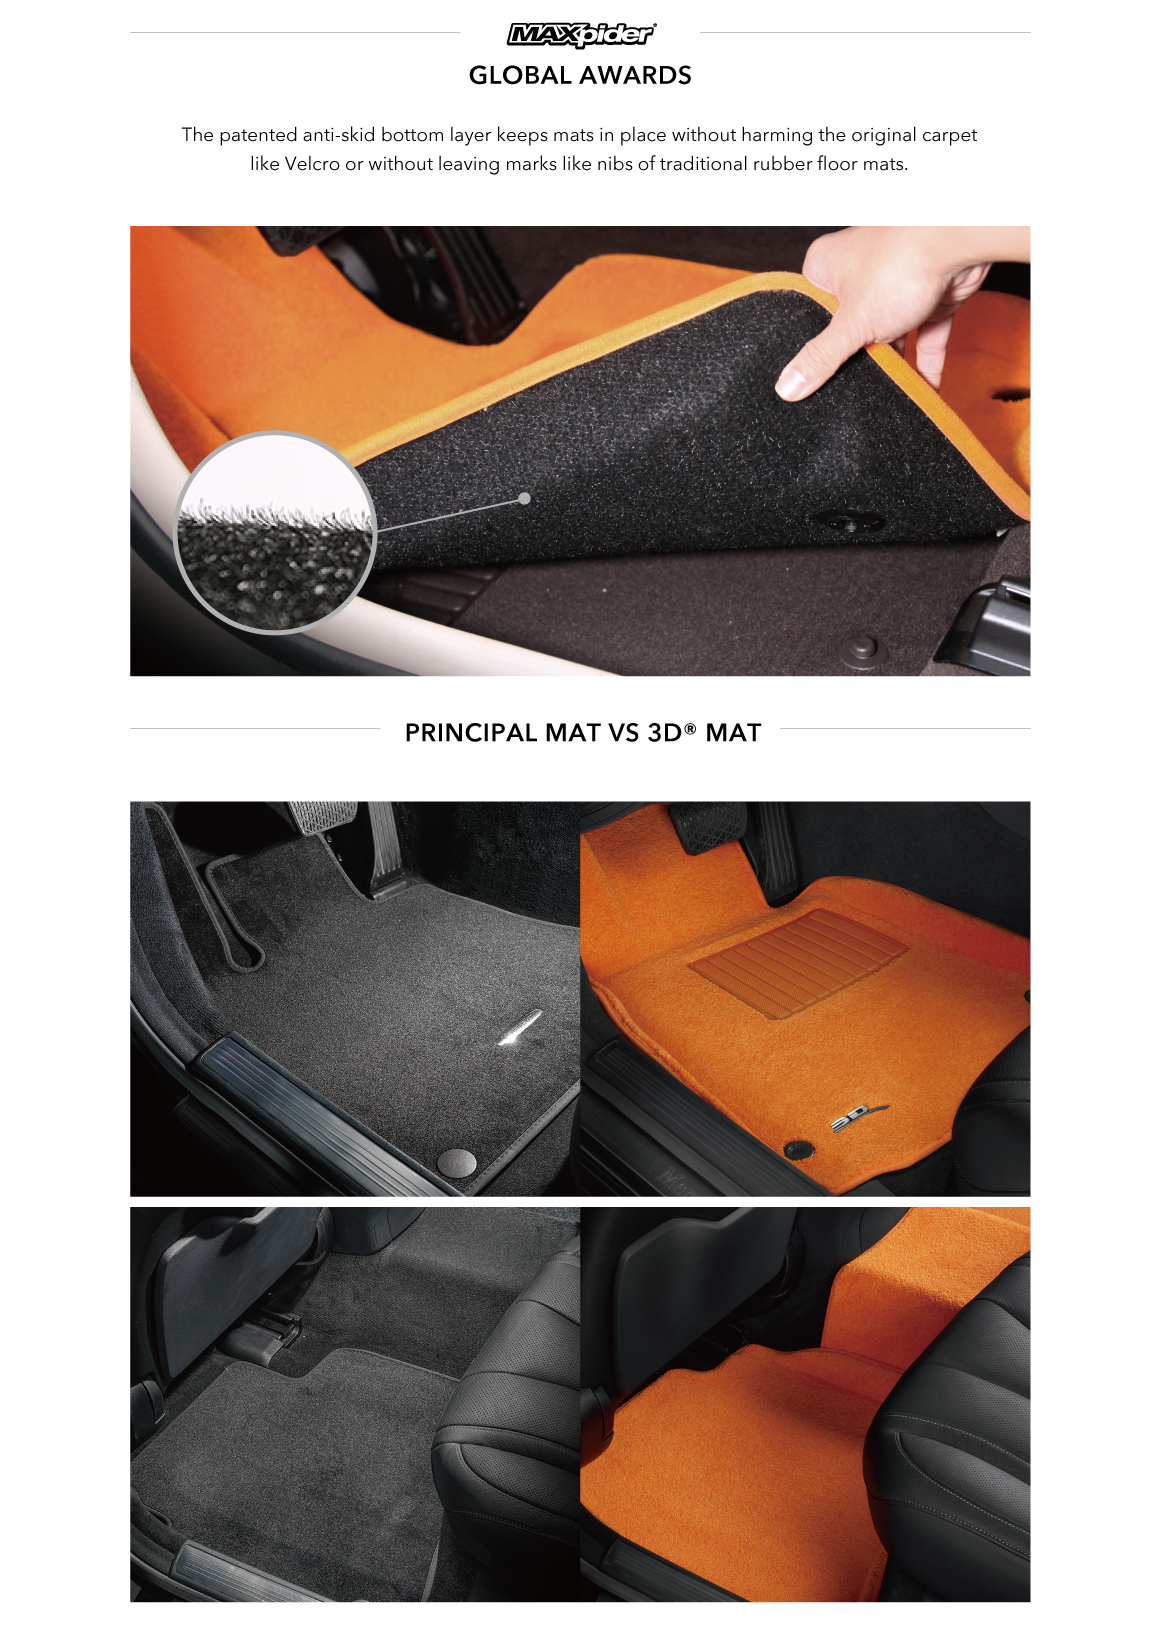 Mercedes S Class Award Winning Car Floor Mats